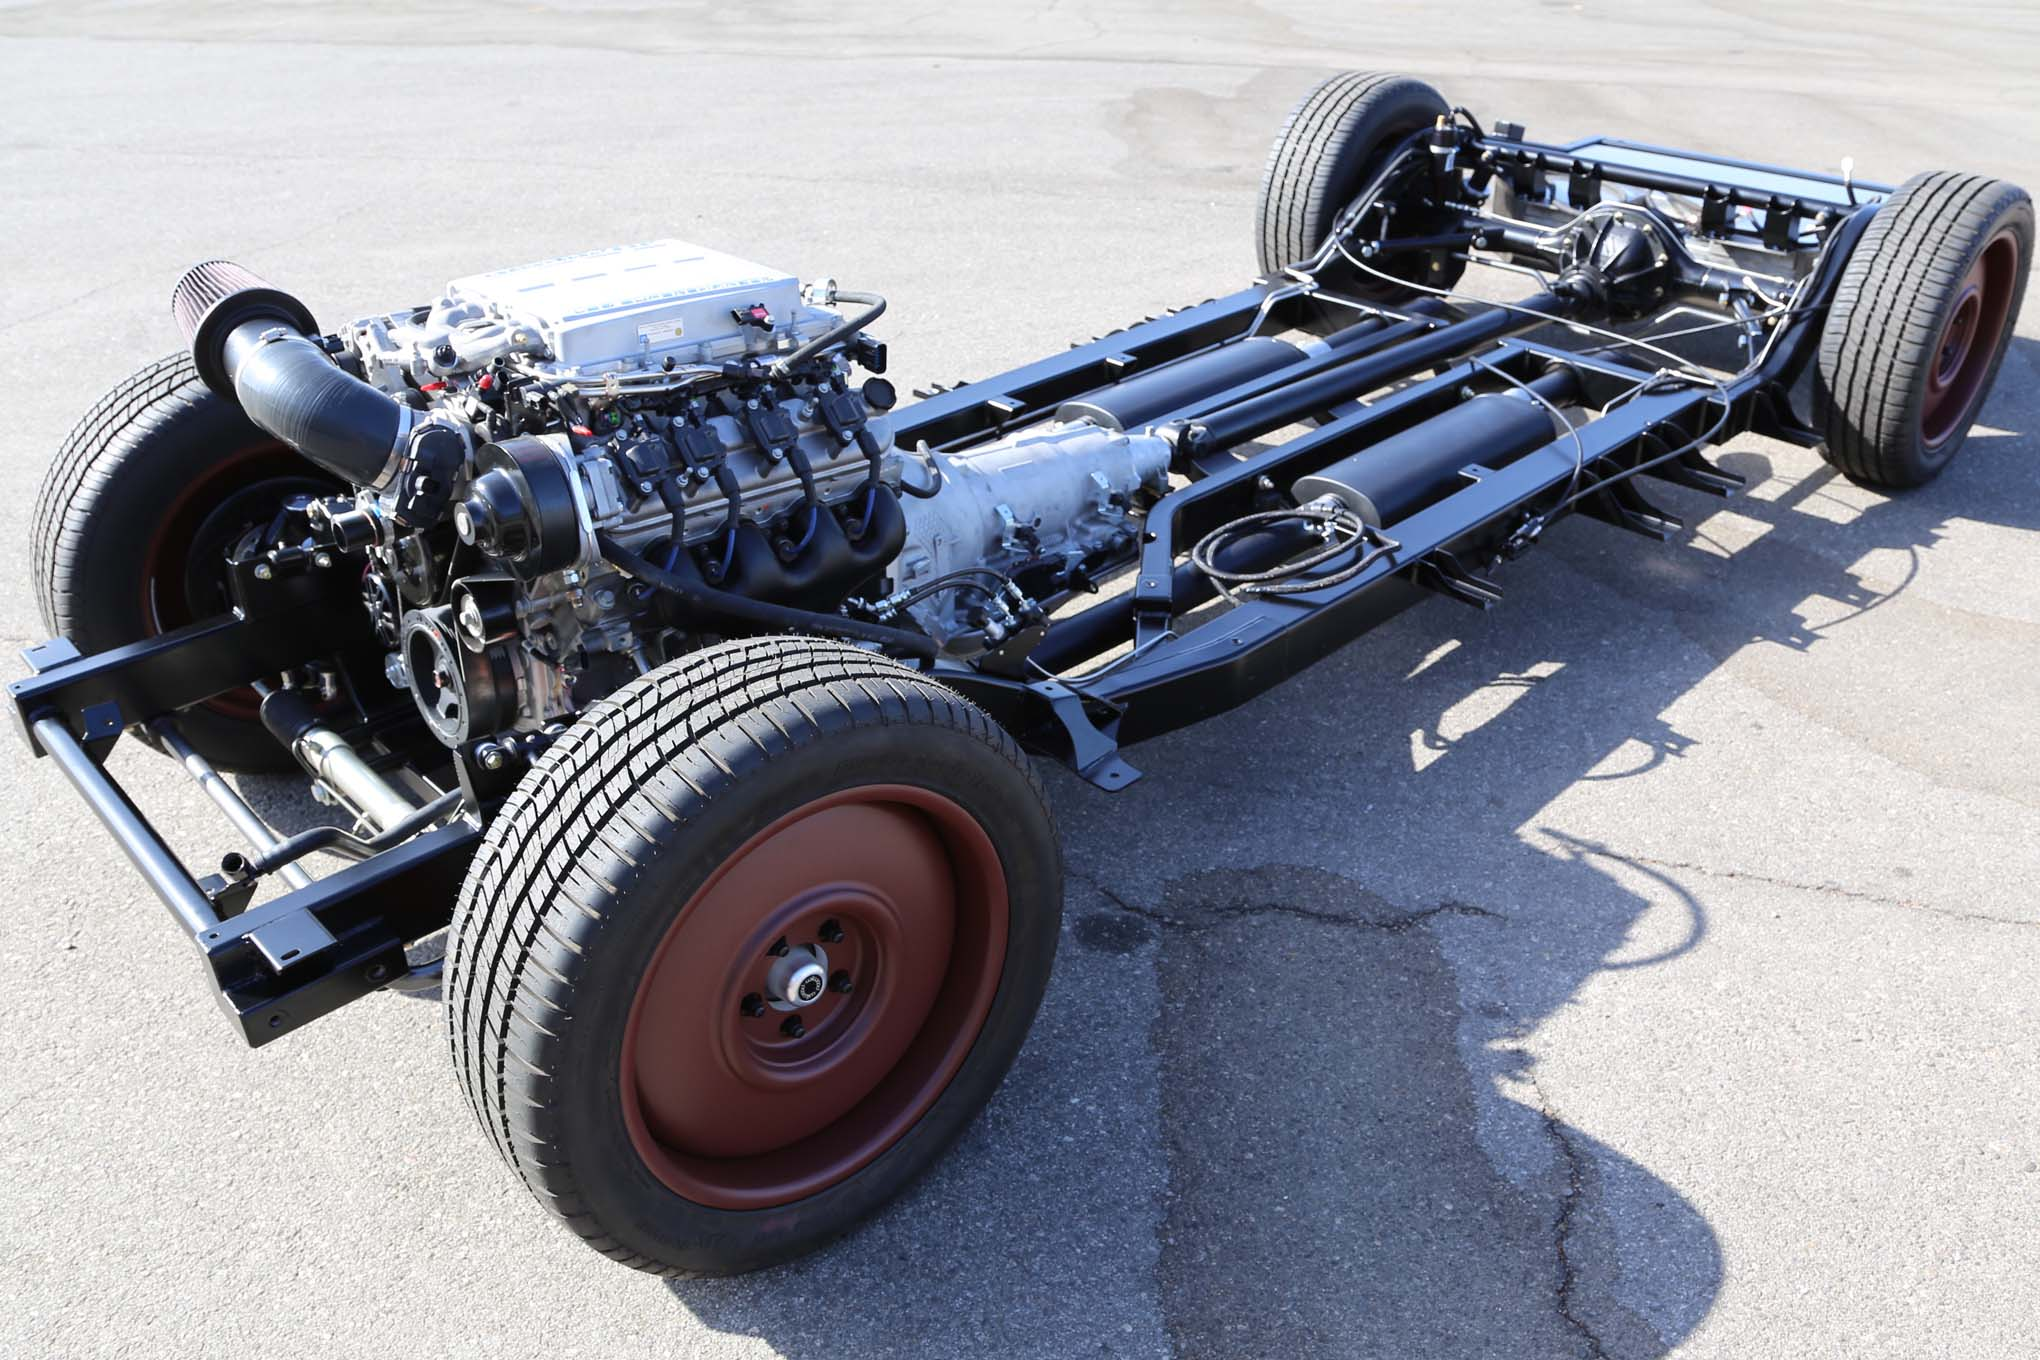 Beneath the Buick's history-marked skin is a mandrel-bent Art Morrison tube chassis, rack-and-pinion steering, four-link rear, and coilover shocks.